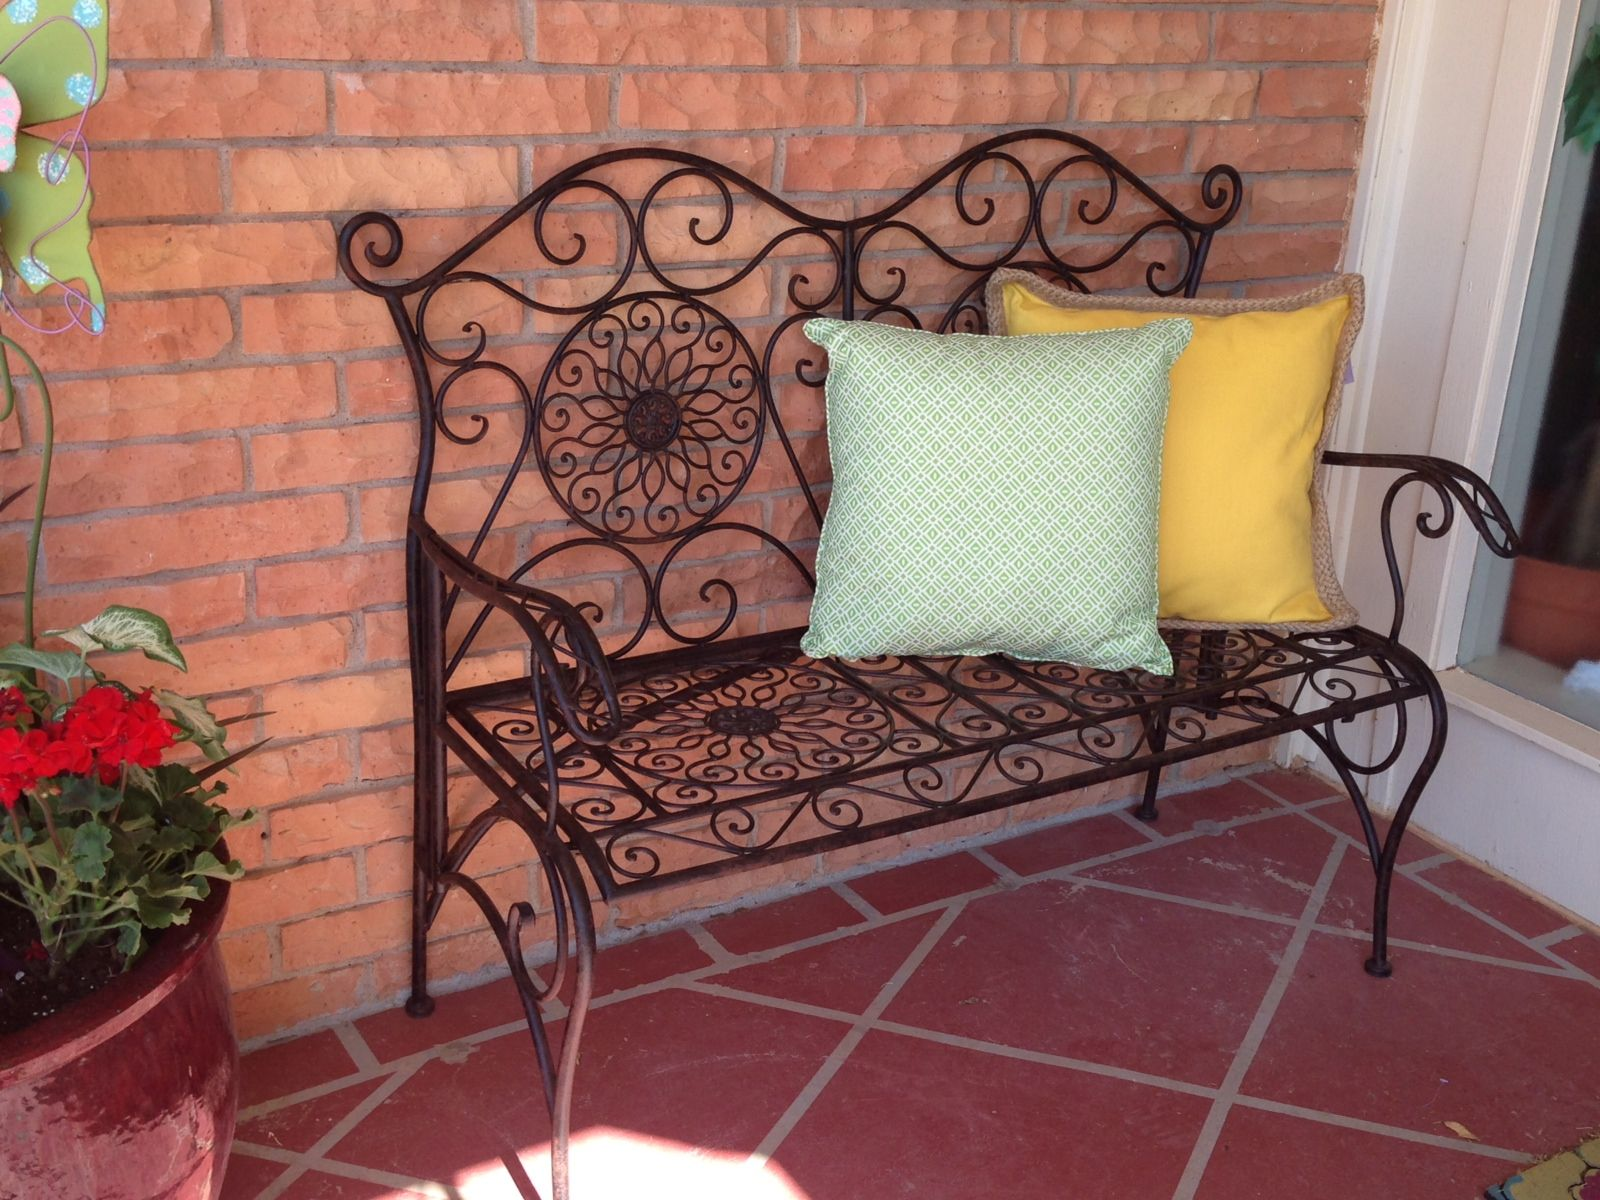 Hobby Lobby Benches Iron Bench Adds Seating And Completes The